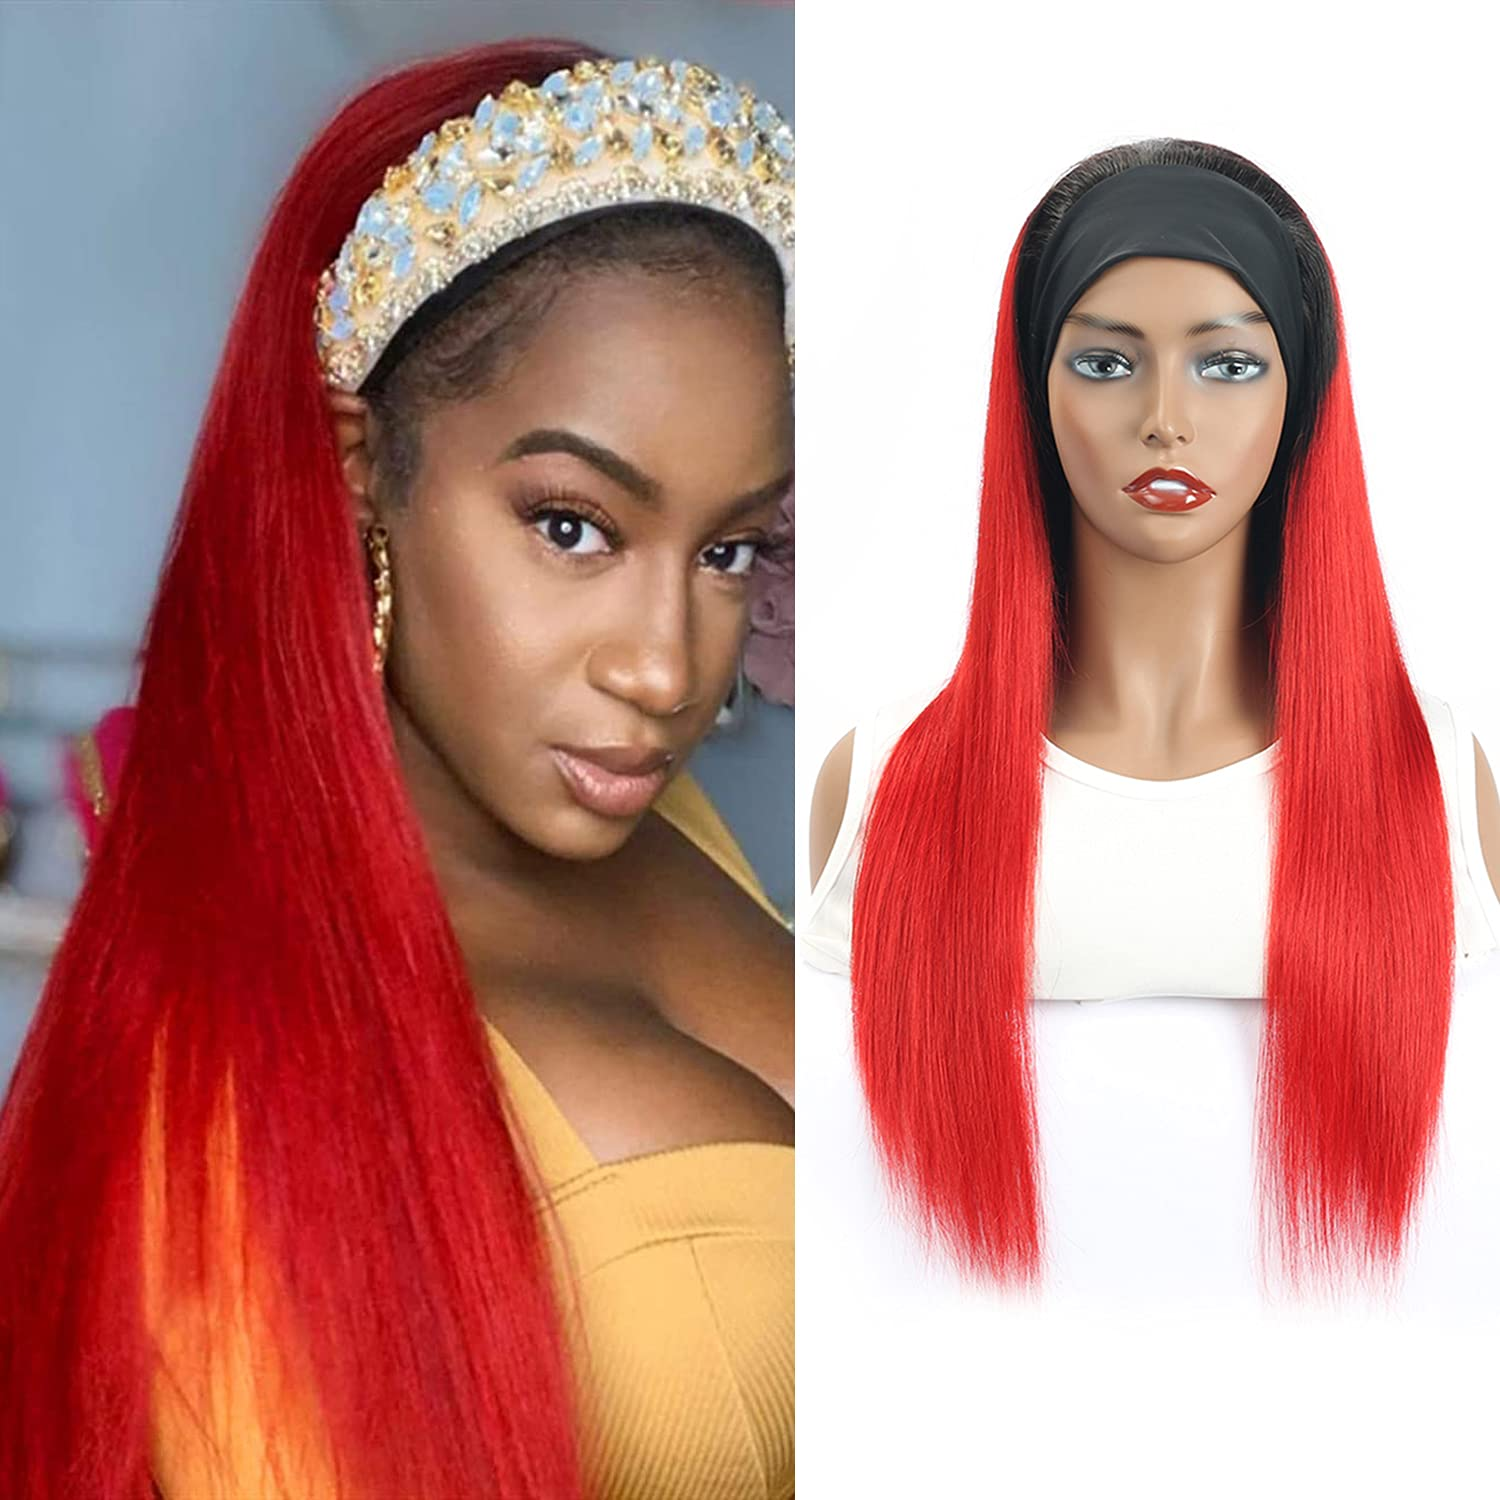 Headband Wigs for Black Limited time for free shipping Women Human Colored L Hair OFFicial store None Straight